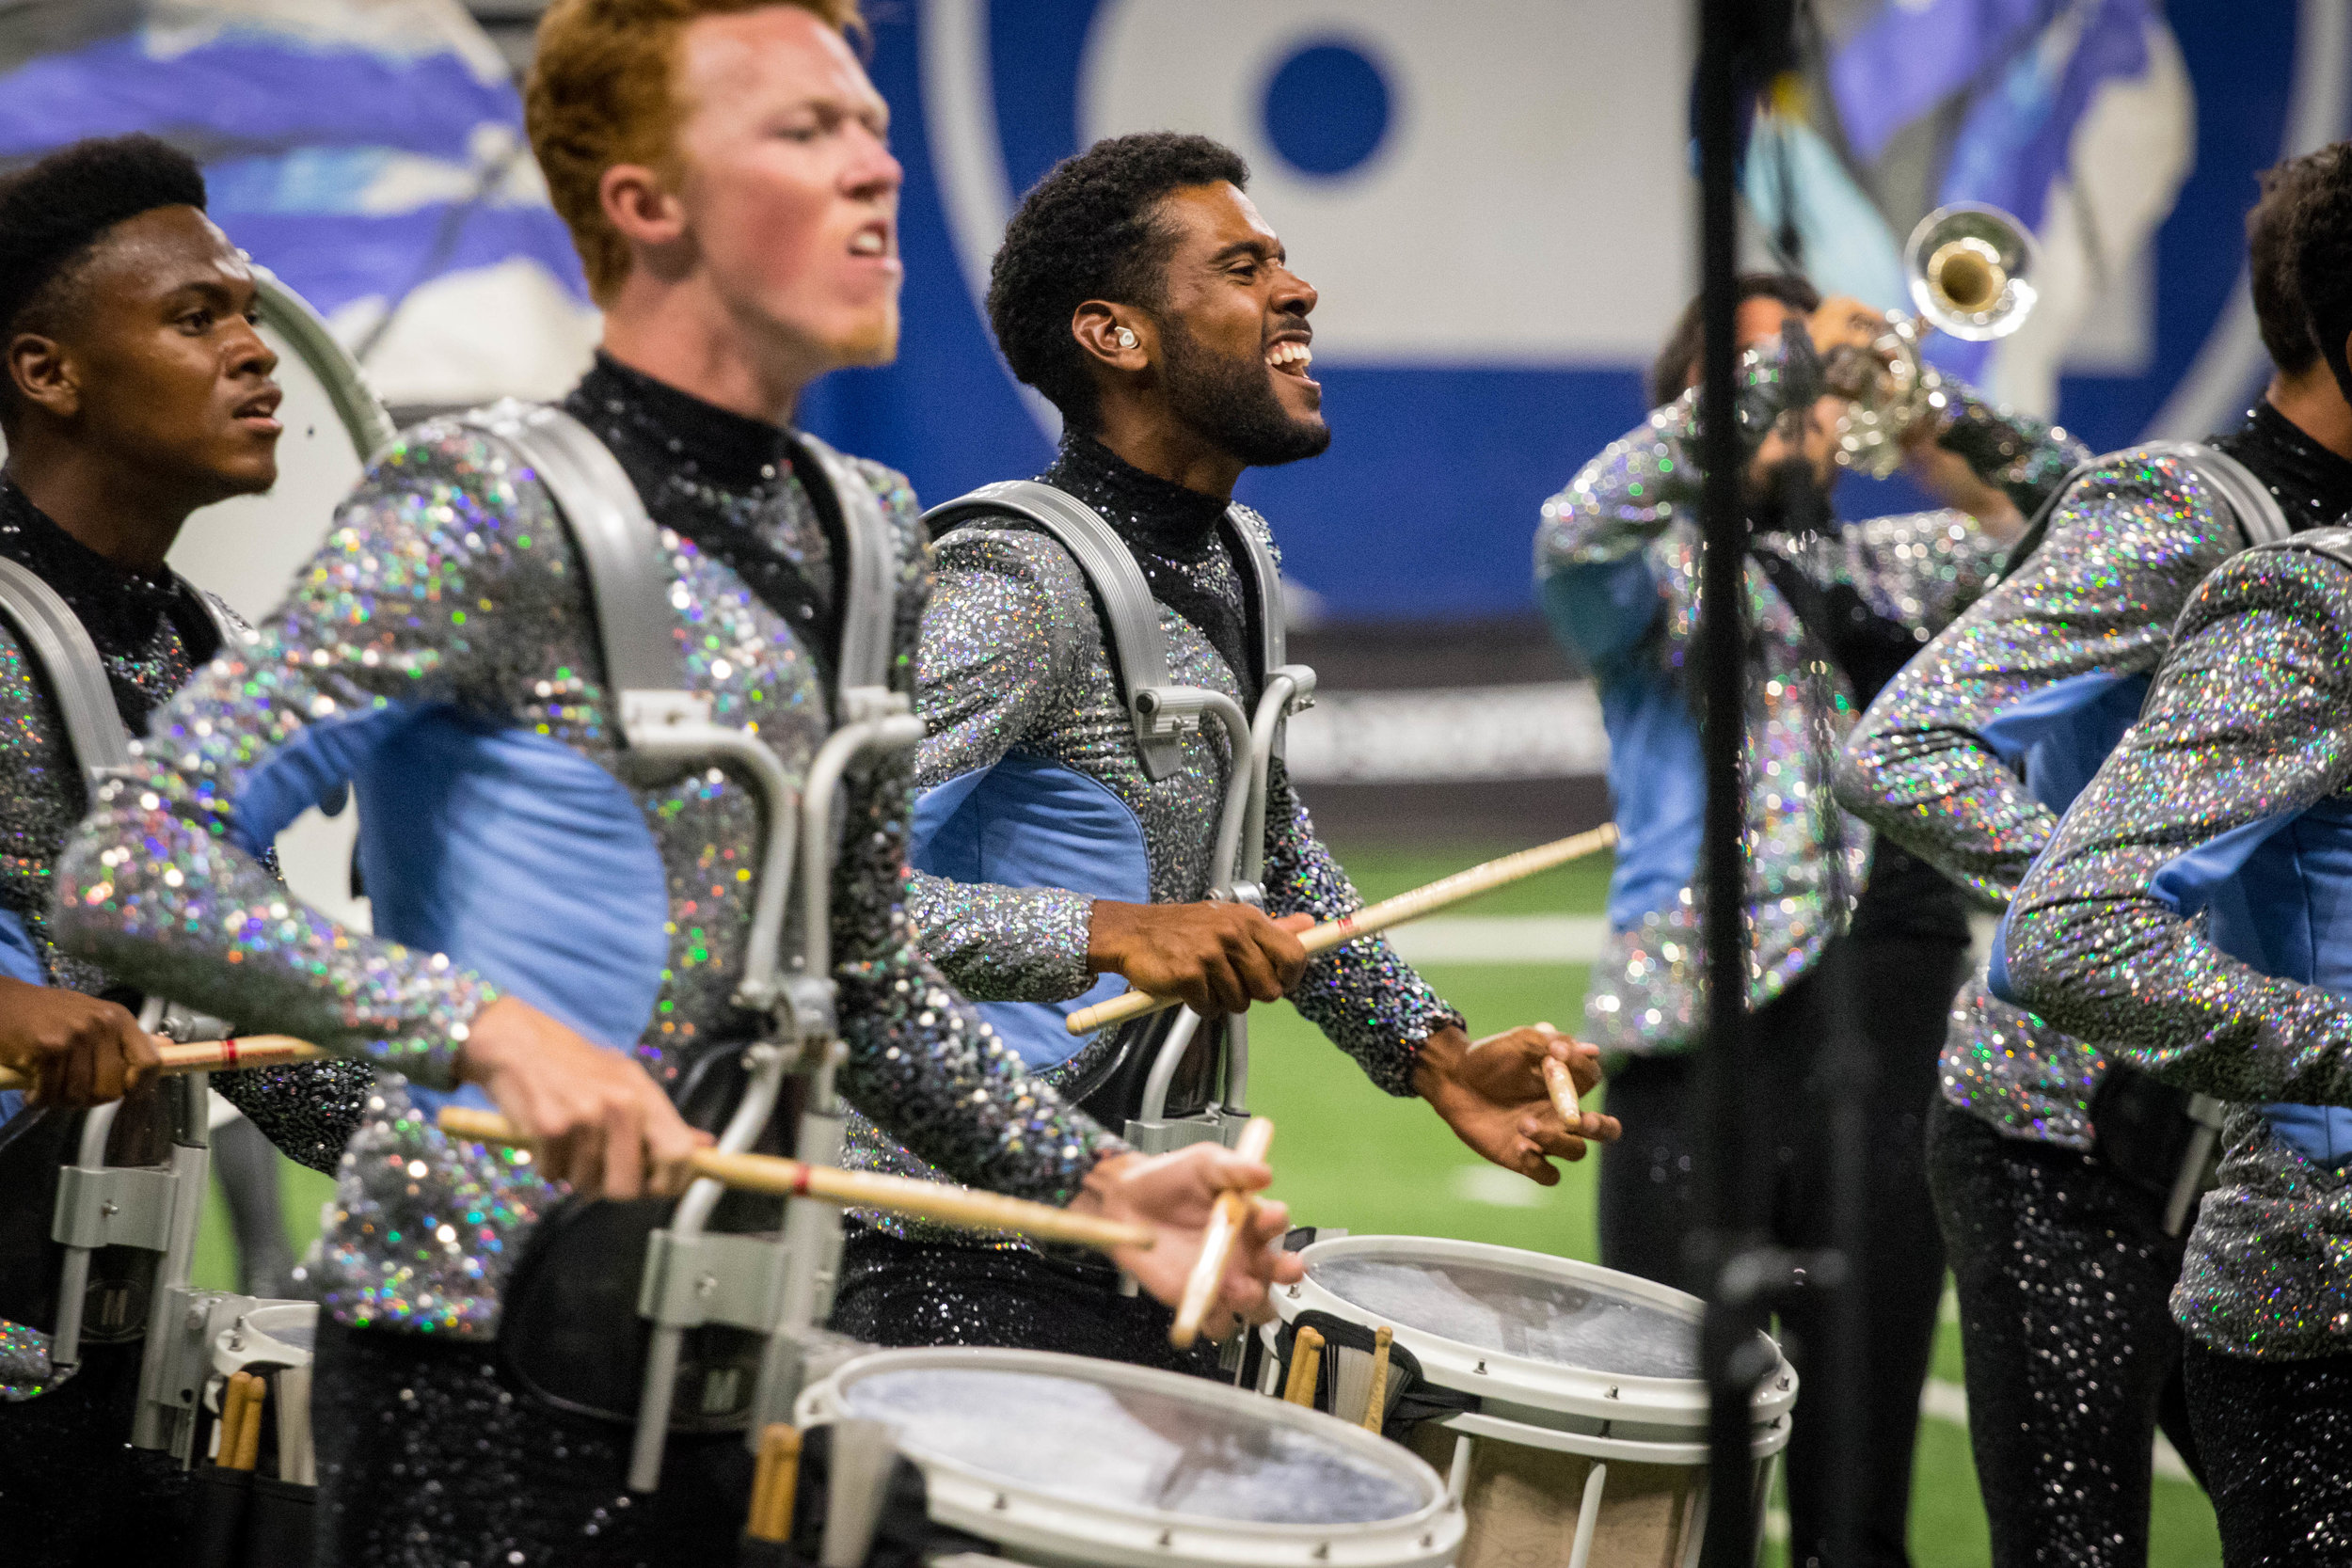 """2019 - For the 2019 season I spend most of my summer remotely contributing to the Blue Knights, hoping on tour with the group while they were in Texas. Because of this I was only on to photograph 3 shows and challenged myself to capture the best images I could possibly get. The 2019 production """"I Remember Everything.."""" was a show I loved watching over and over again and am very thankful for the images I was able to capture."""